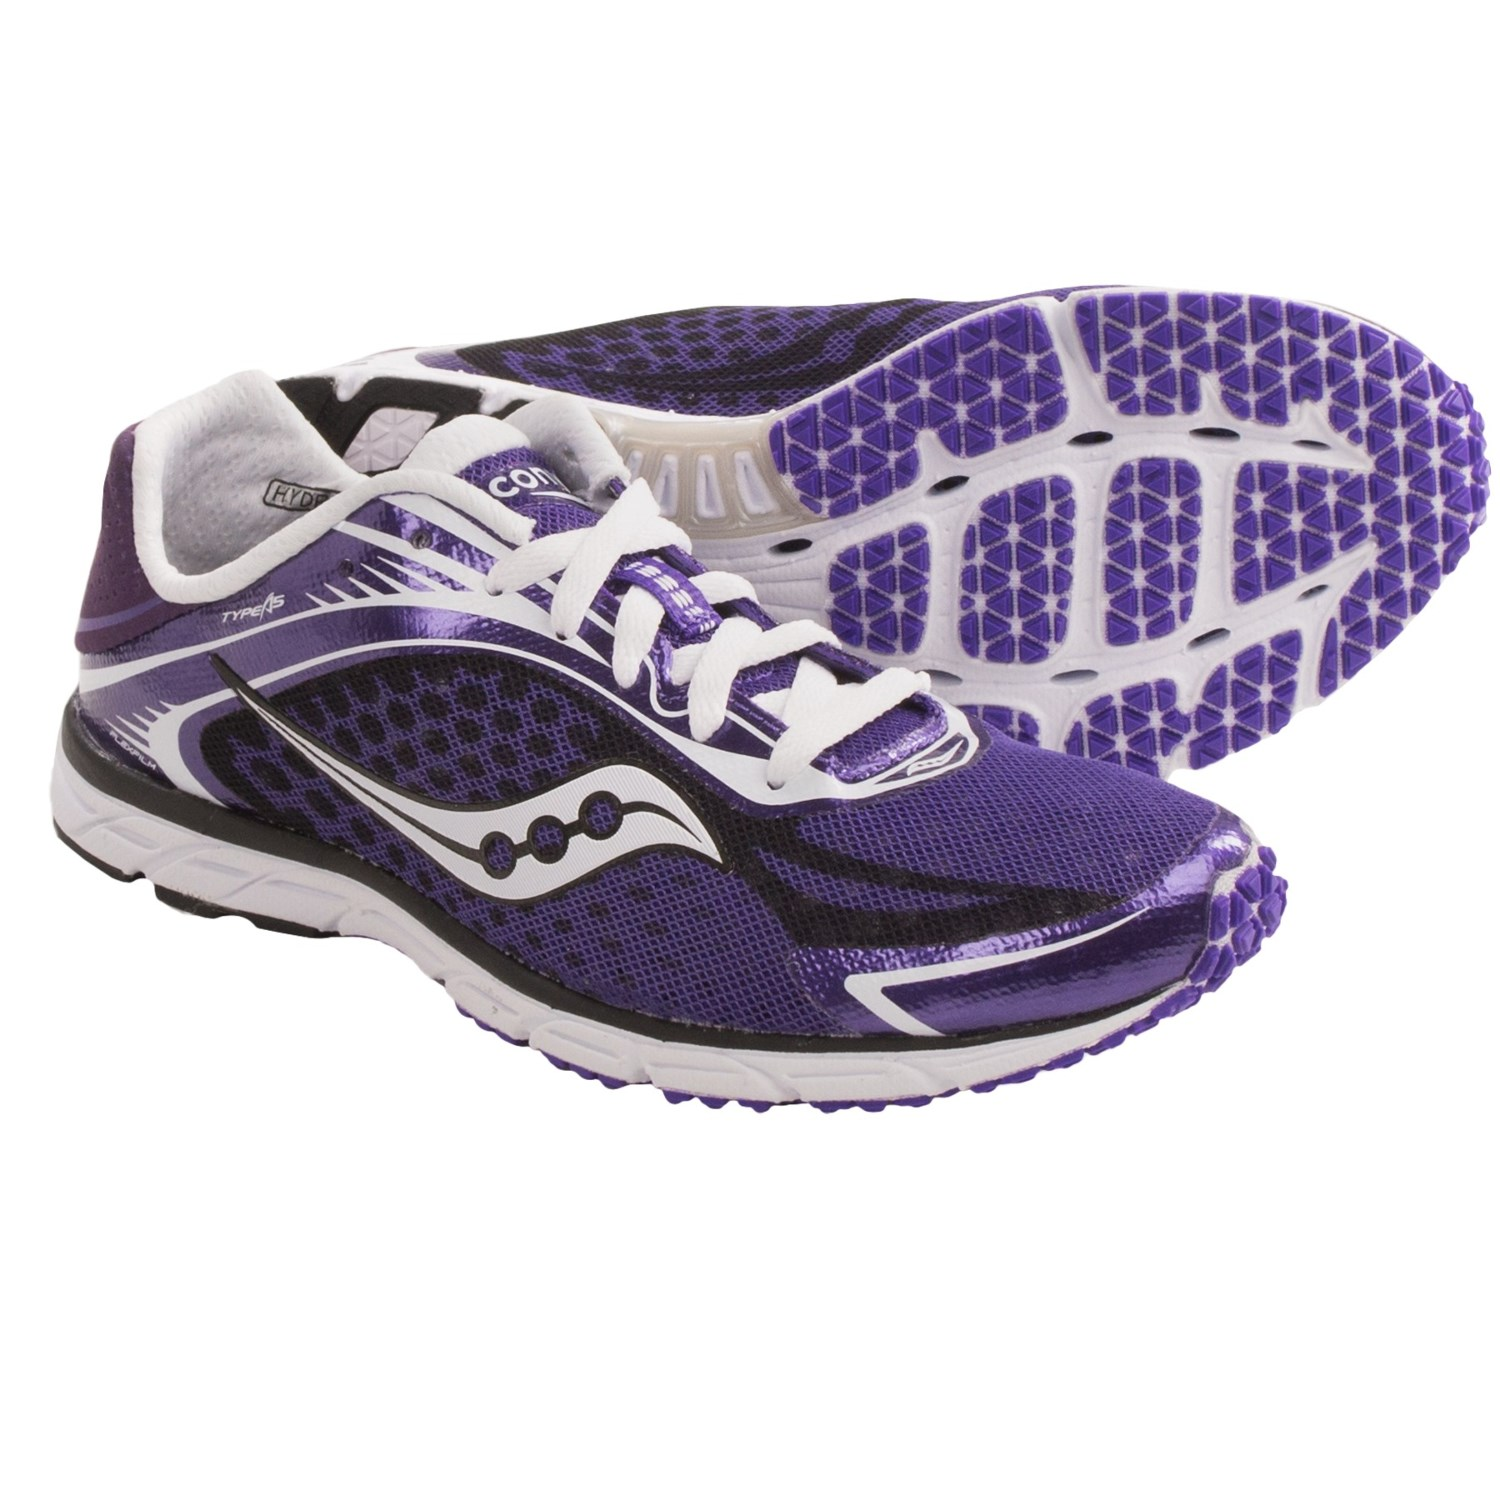 Saucony Type A5 Running Shoes (For Women) 6451J - Save 25%